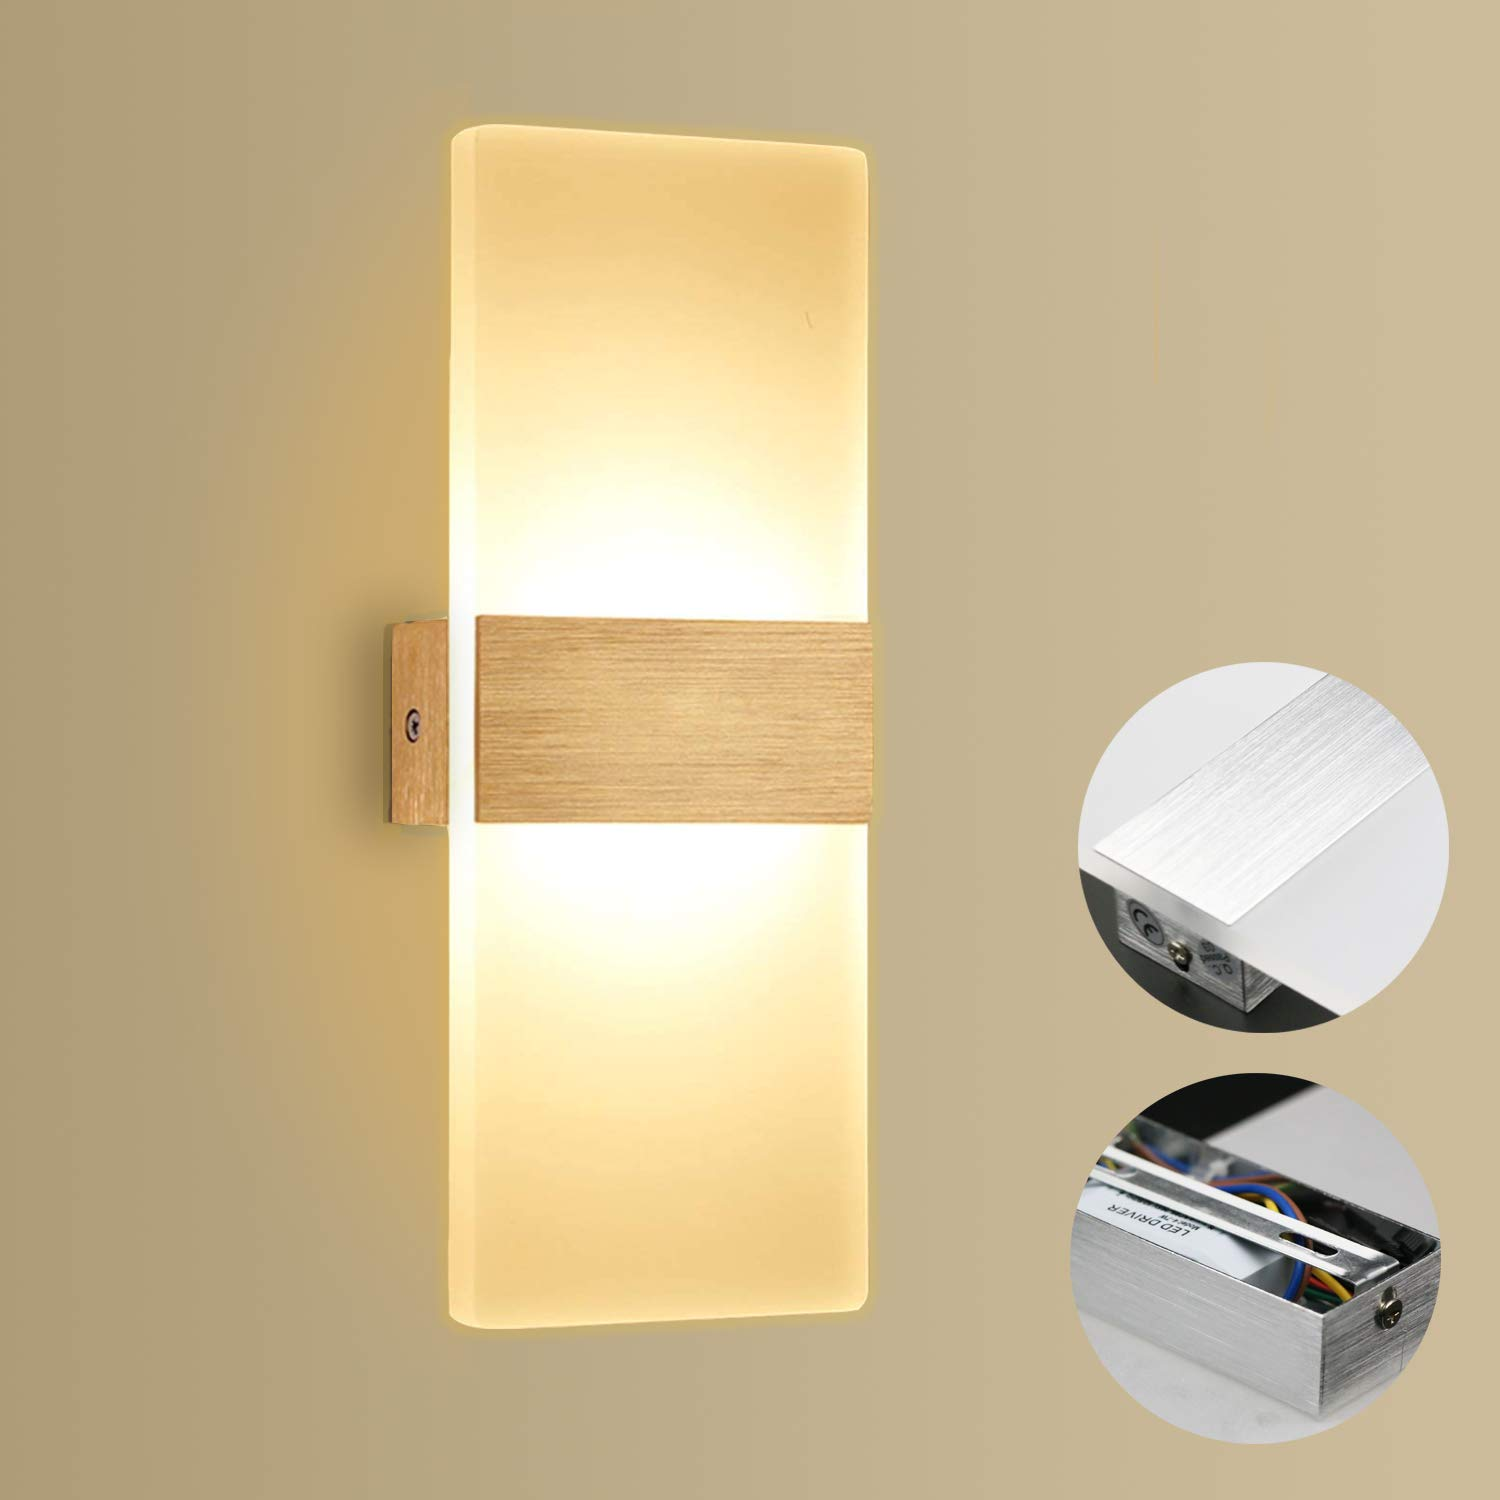 Apliques de Pared 12W Kimjo, Lámpara de Pared Interior LED Blanco Cálido 3000K AC 220V, Lámpara de Pasillo en Acrílico, Moderna Plata Cepillado Perfecto para Corredor, Dormitorio, Escalera: Amazon.es: Iluminación